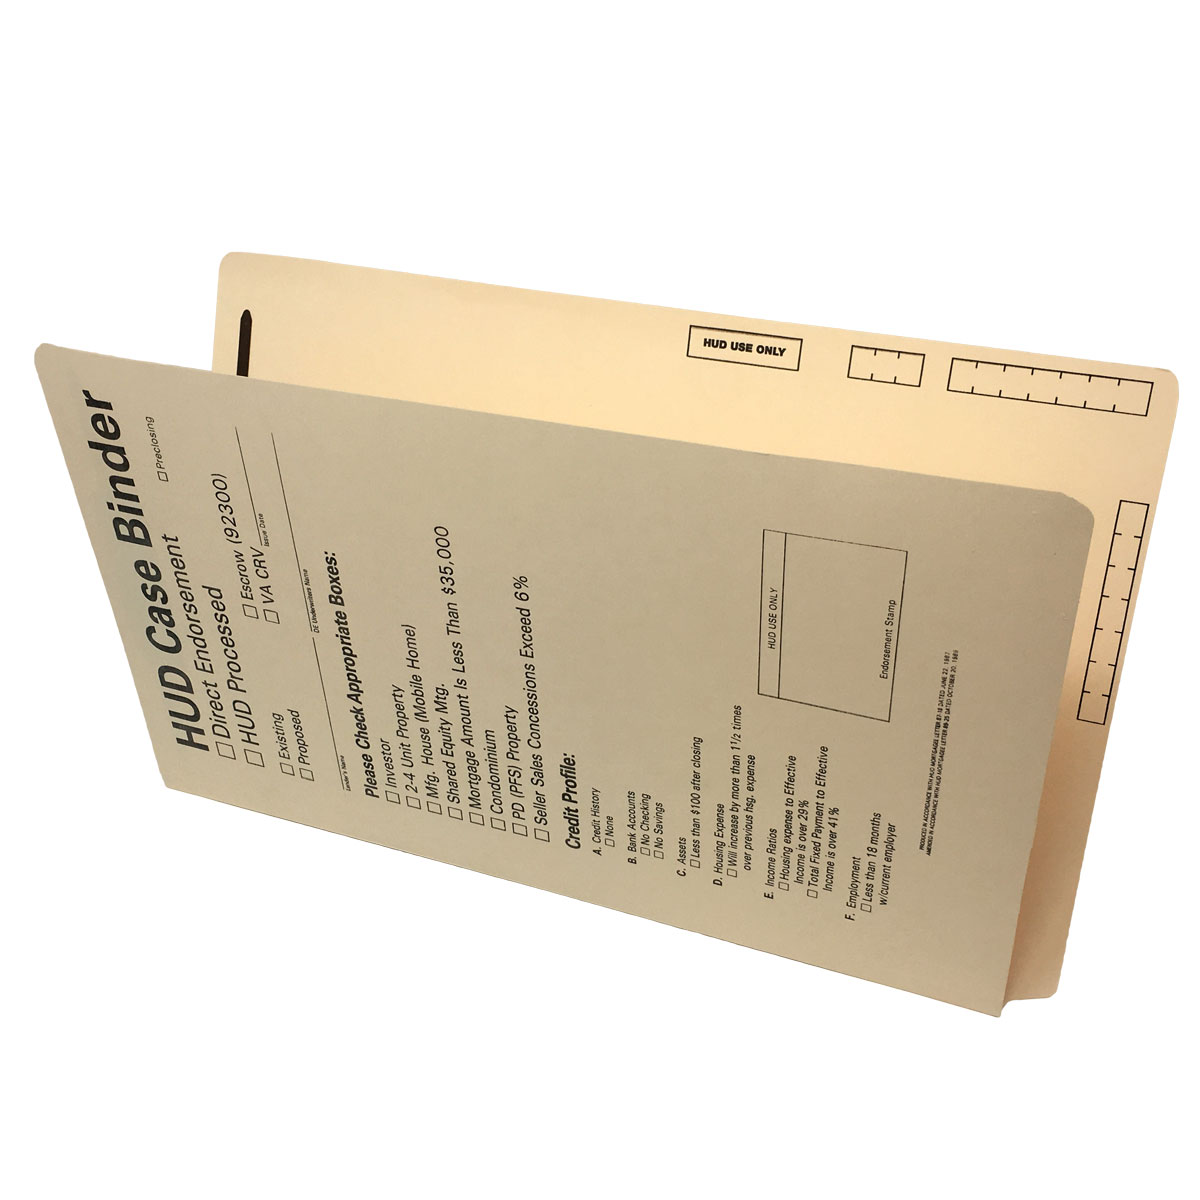 S-9246 - HUD Case Binders, 15 pt Manila, Legal Size, End/Top Tabs (Box of 50)